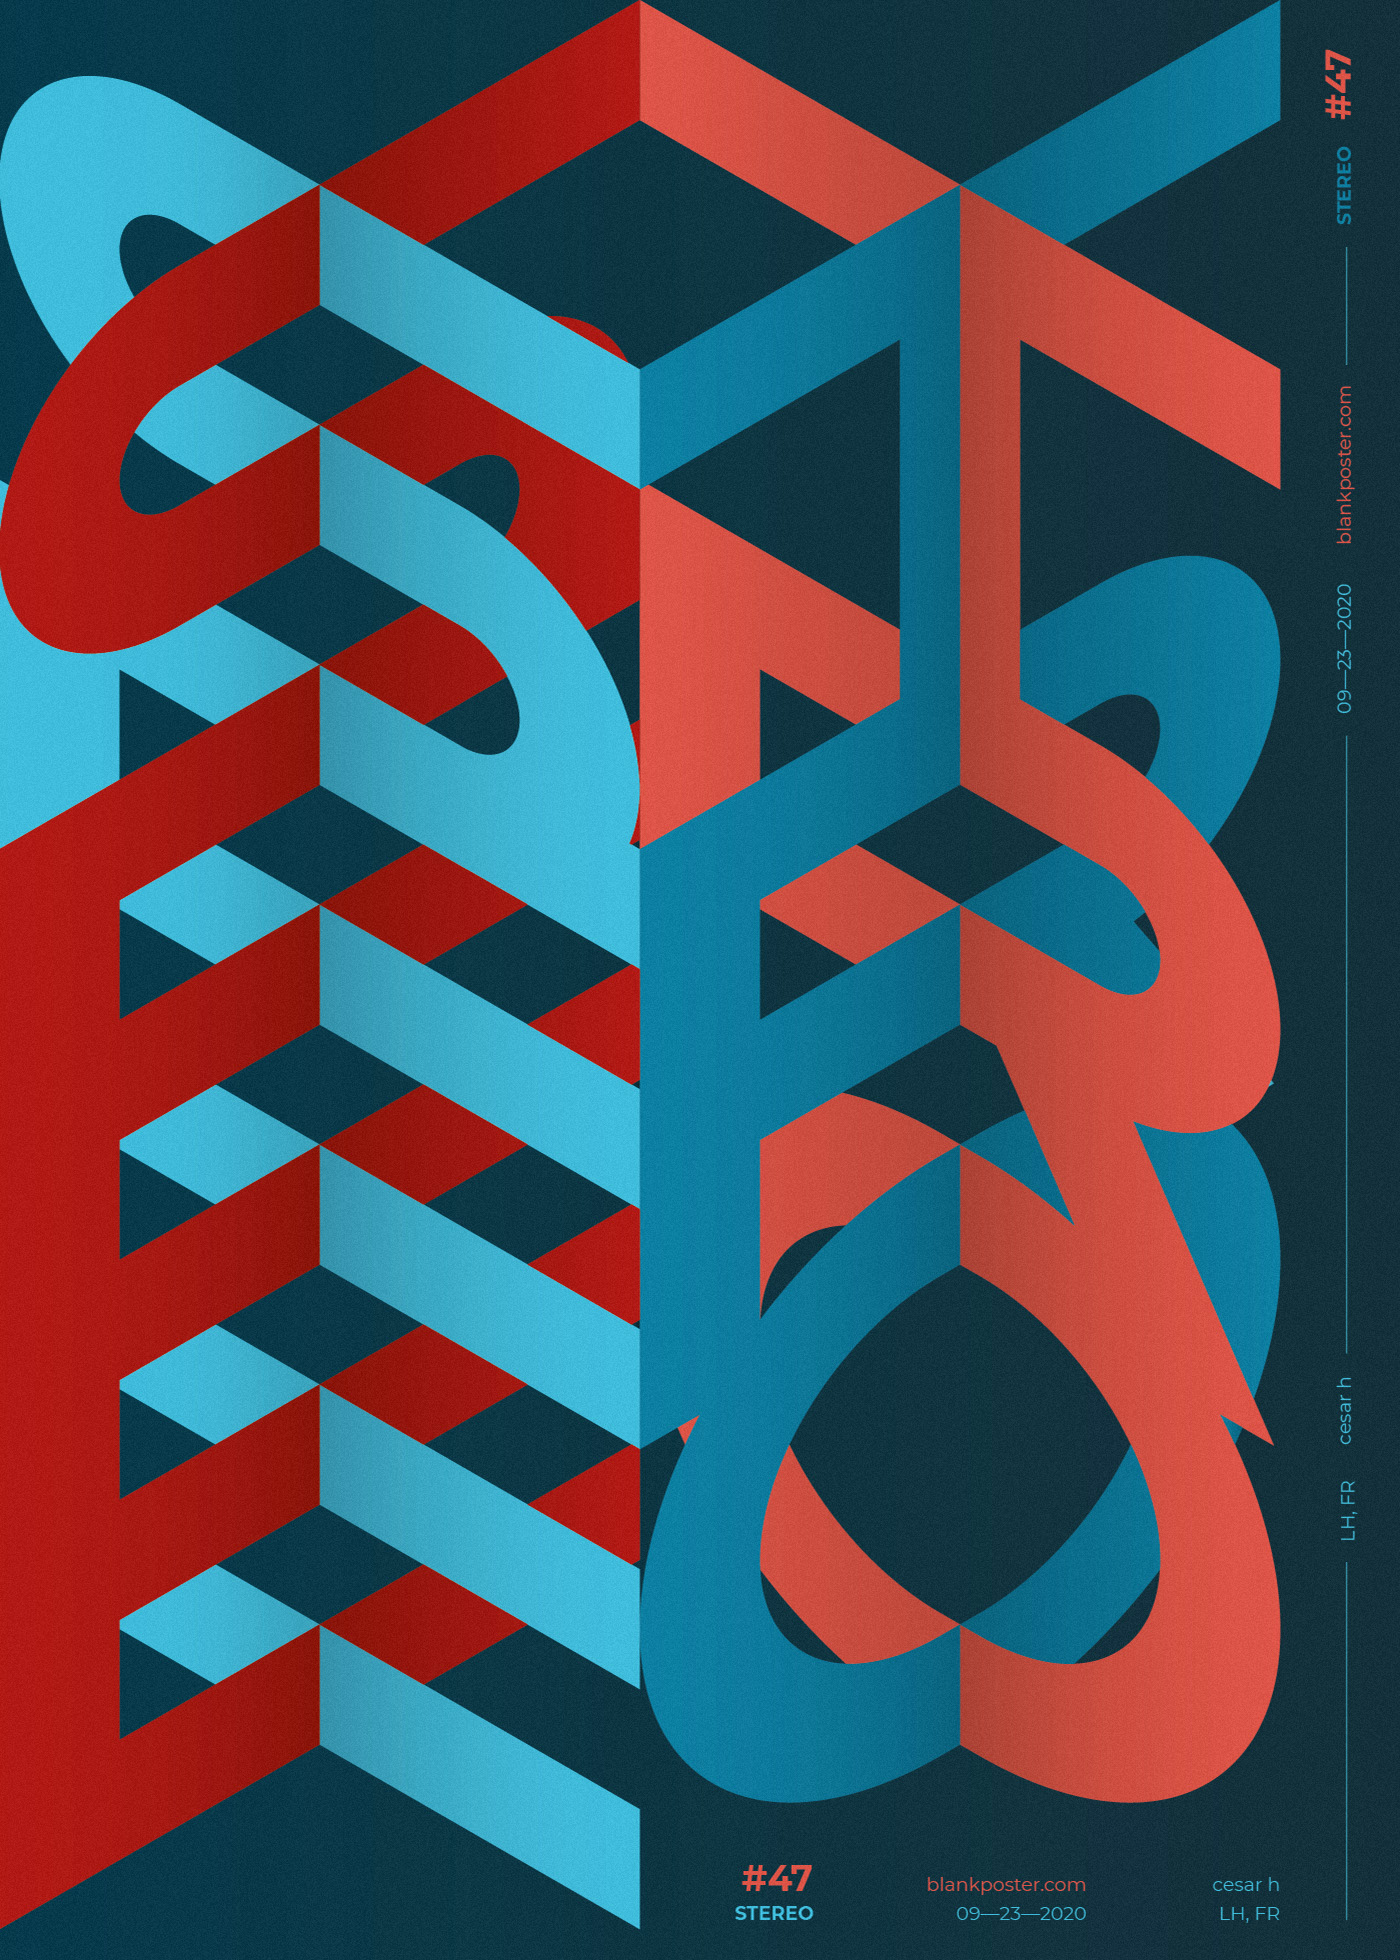 Blankposter :: Stereo